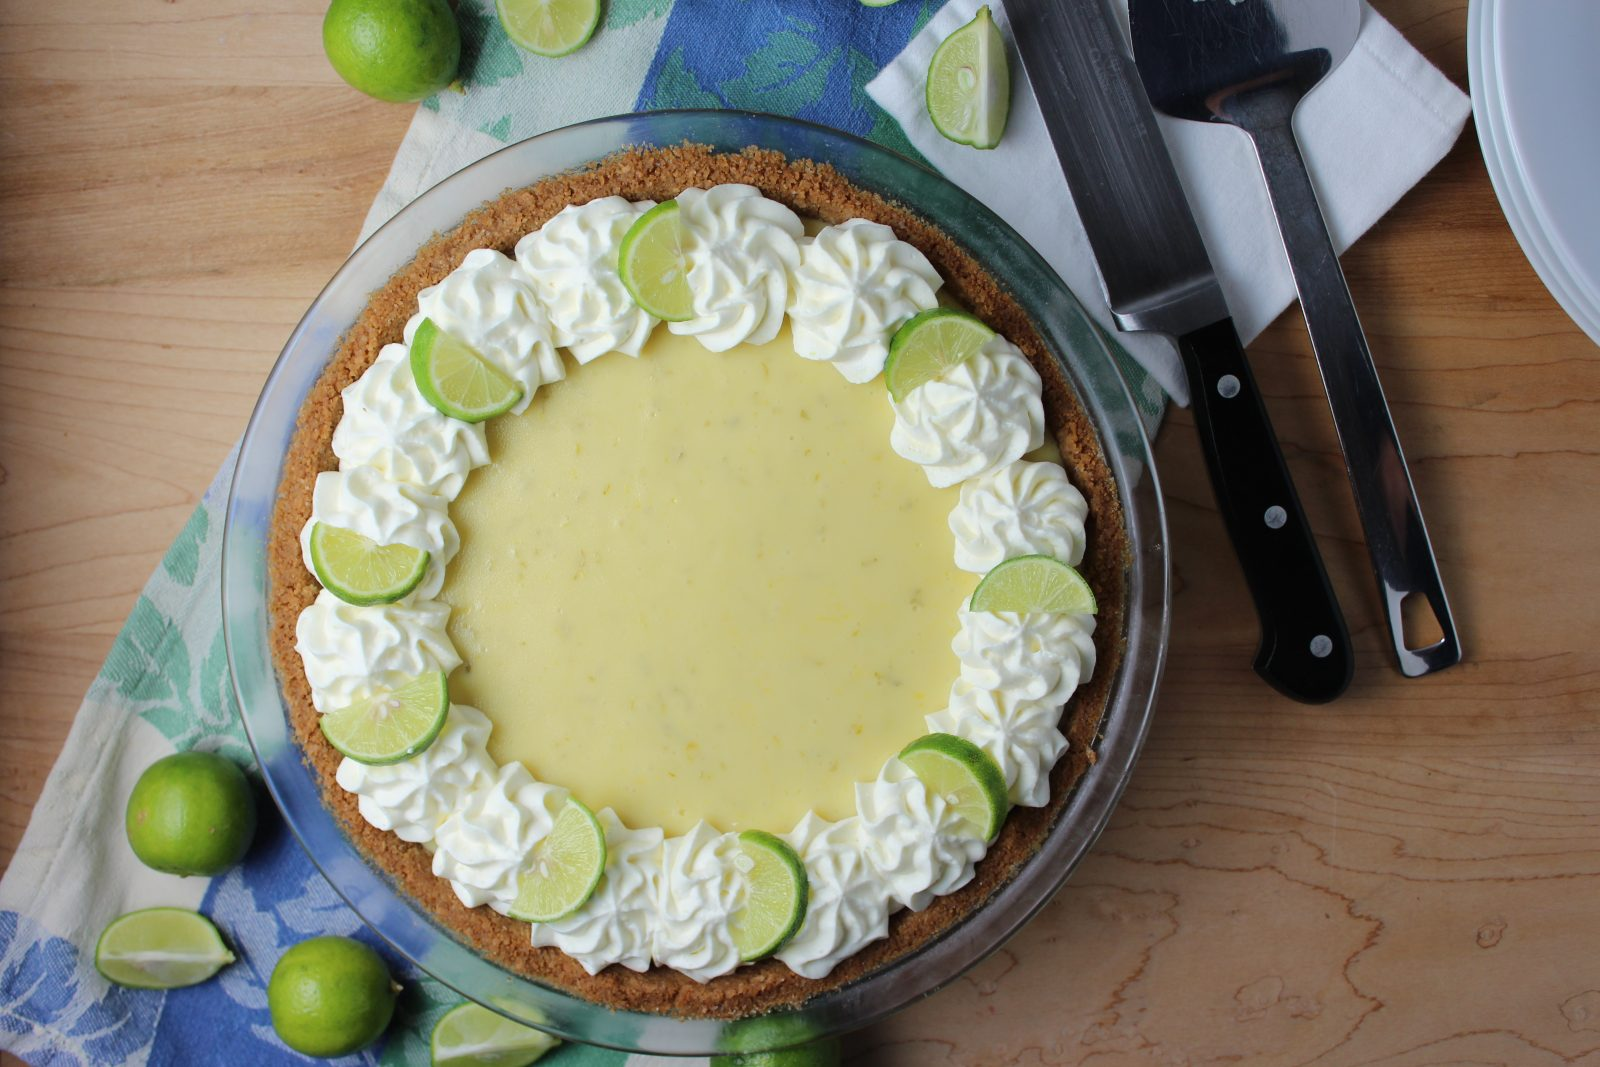 key lime pie with whipped cream rosettes and key lime slices around edge of pie